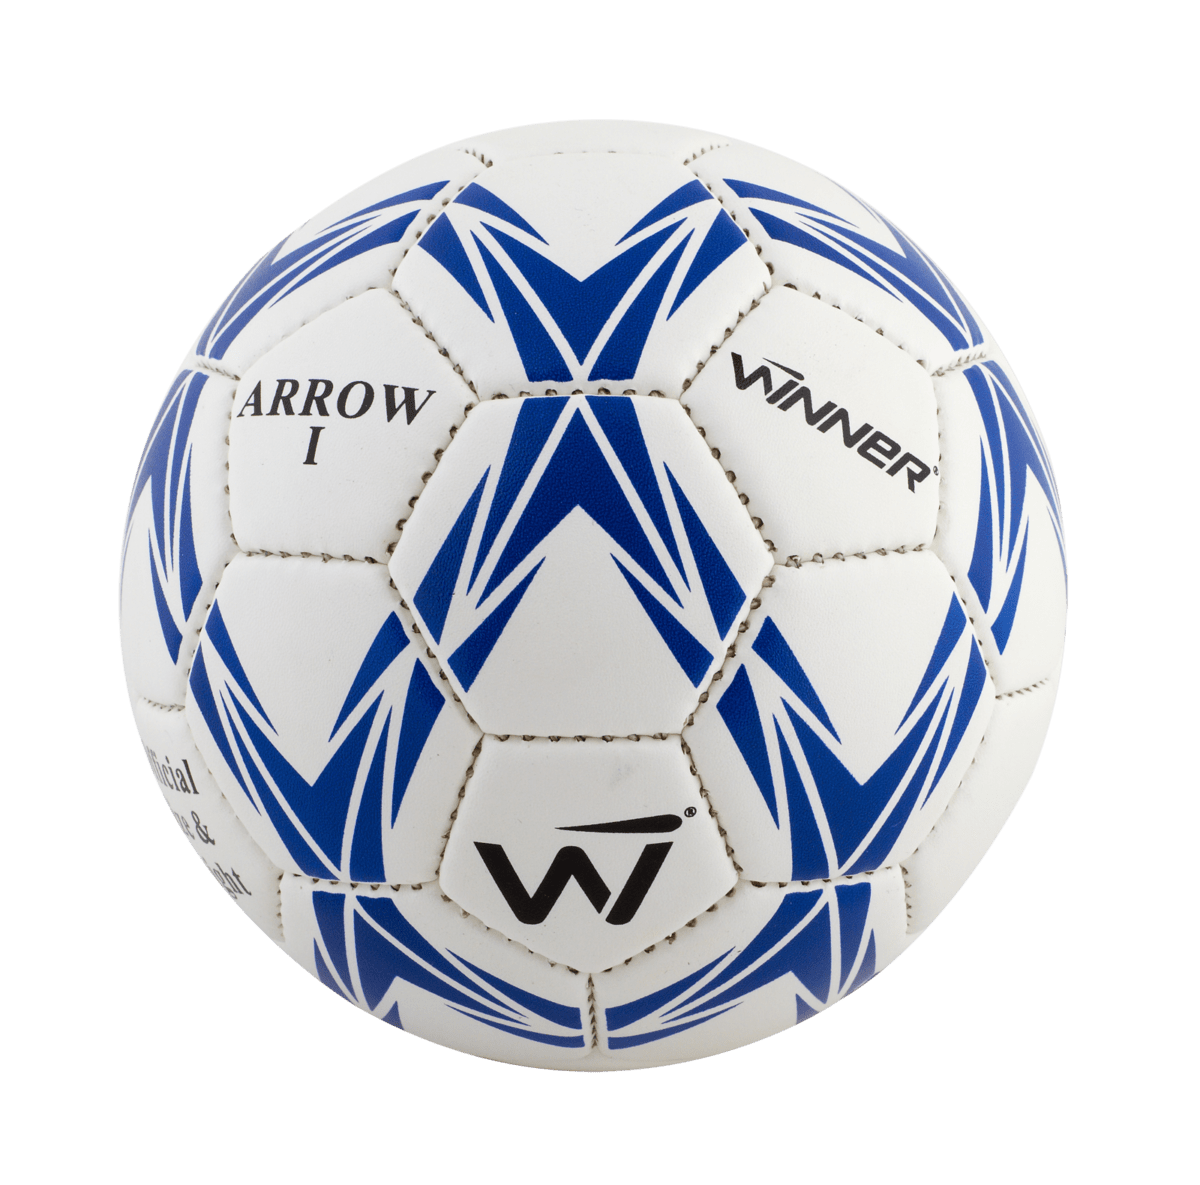 Minge handbal Arrow - 1 - junior